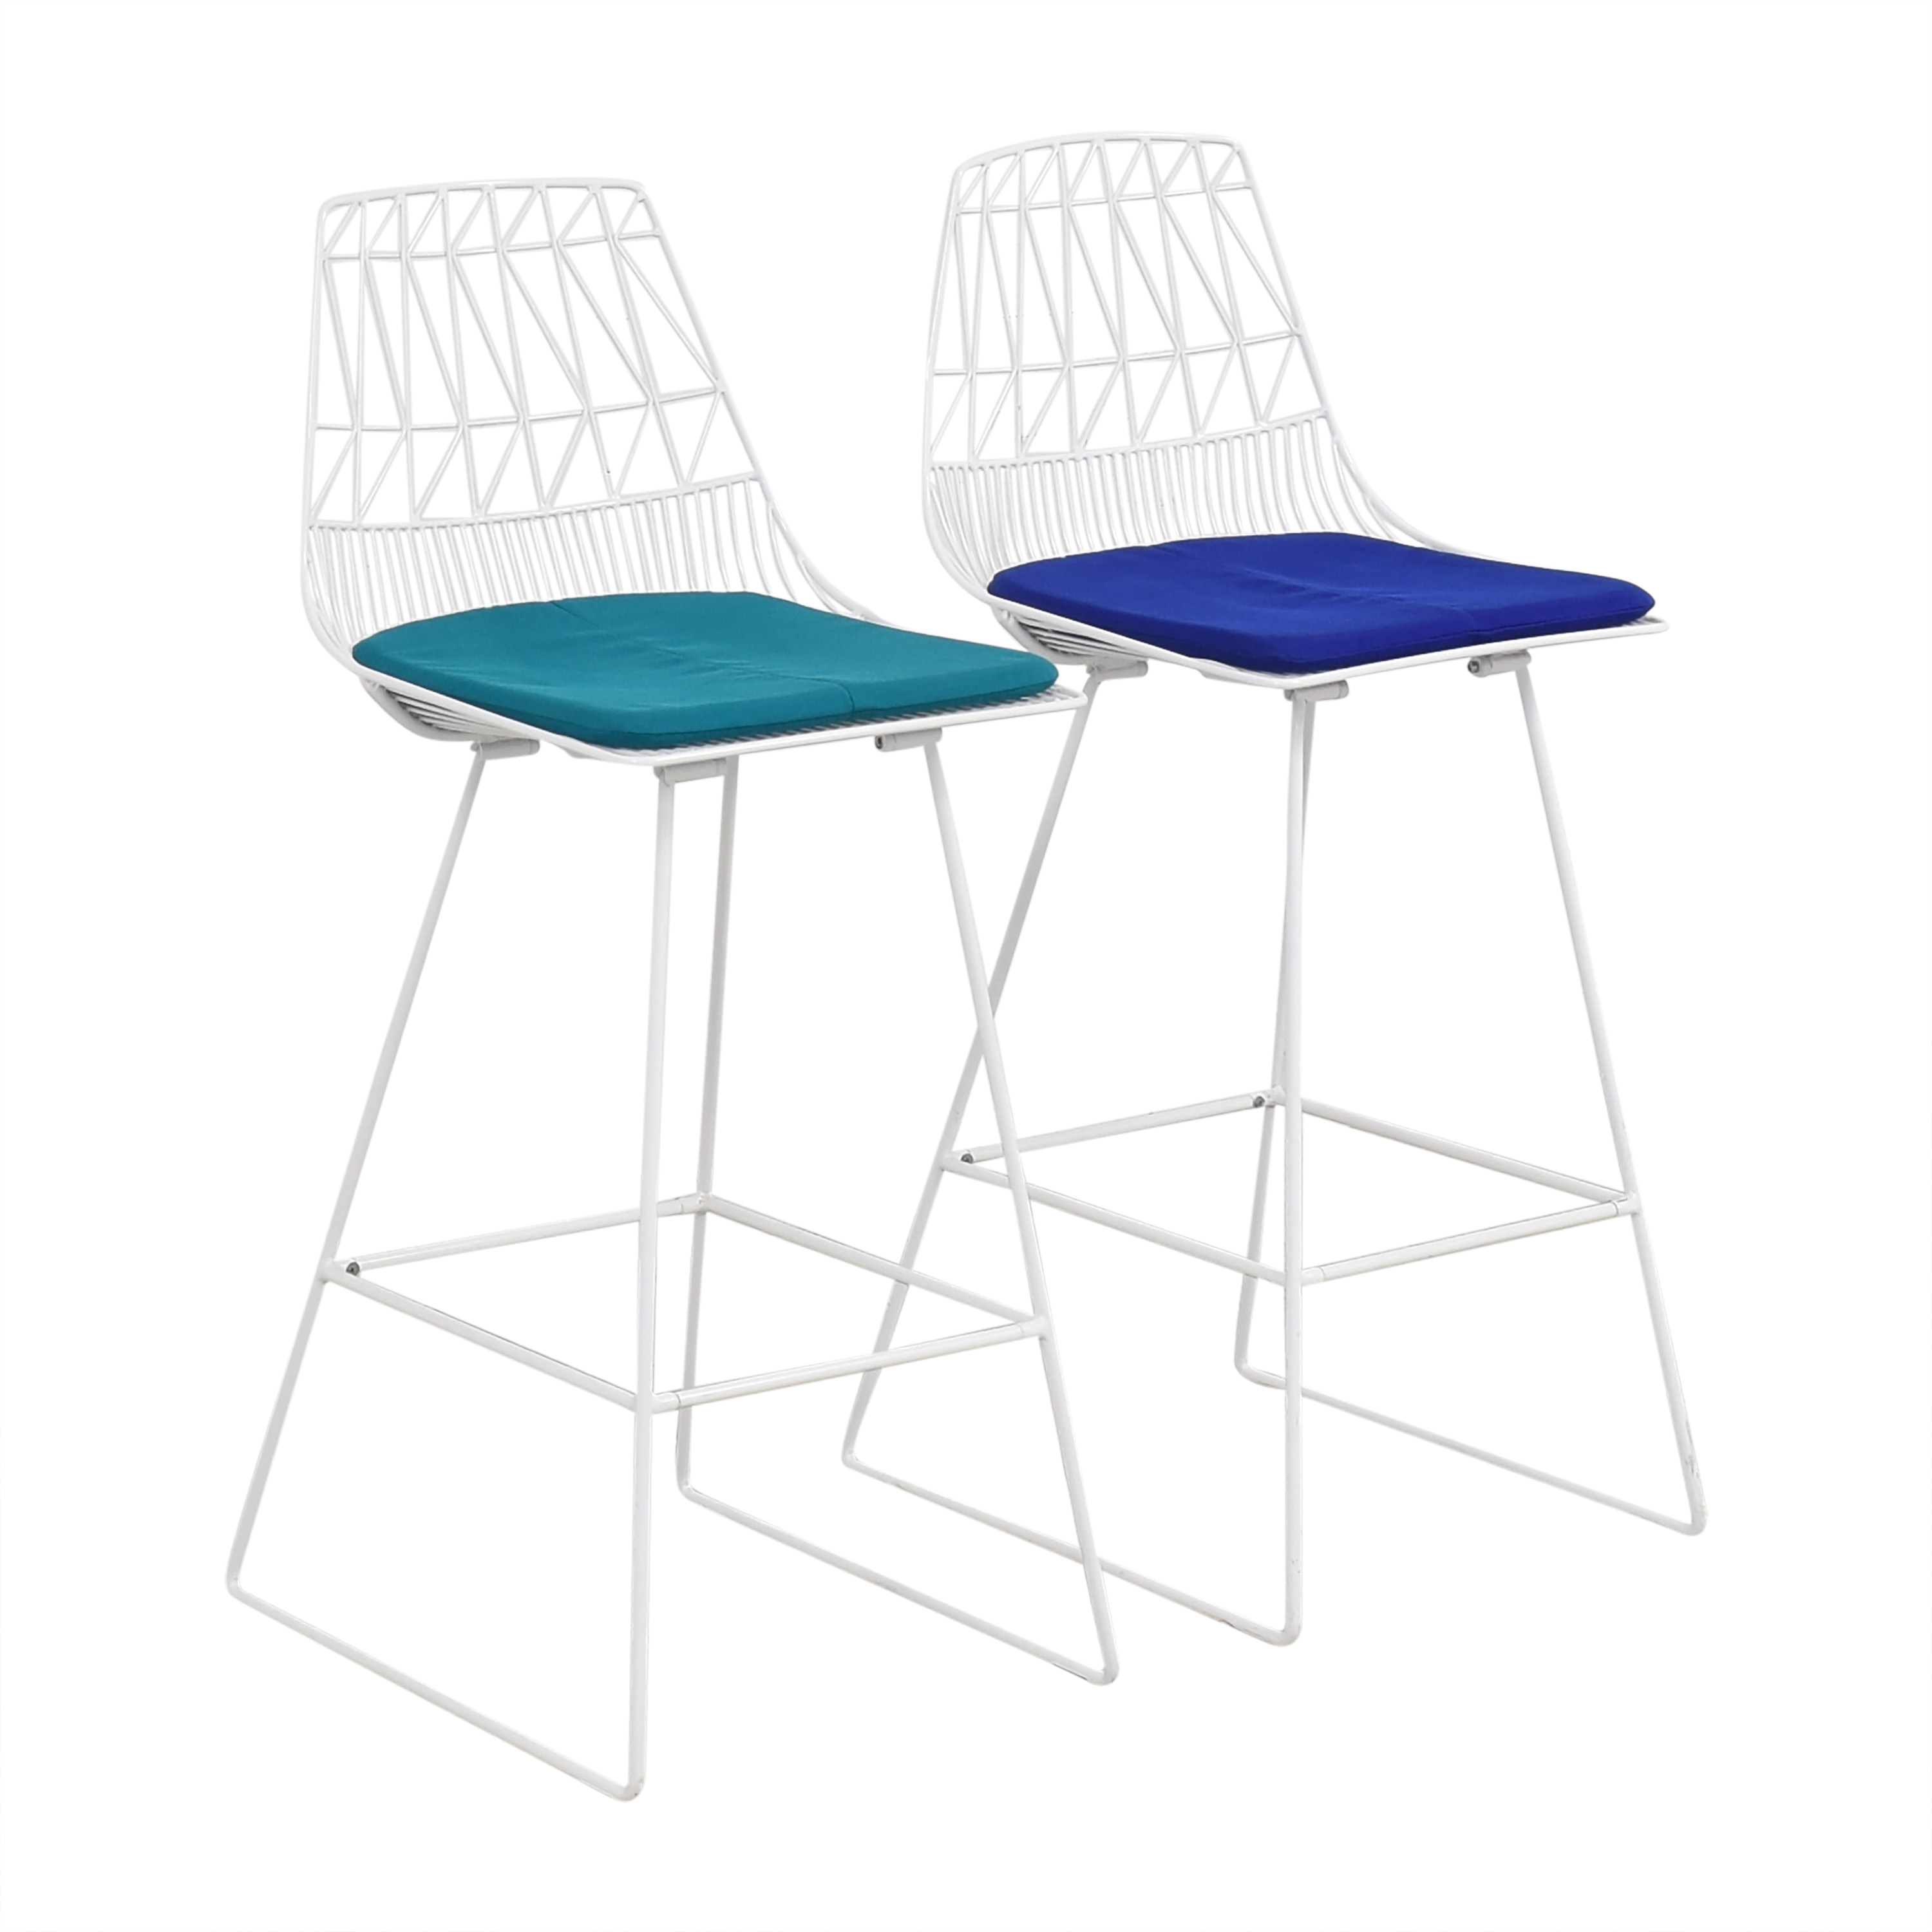 Bend Goods Bend Good Lucy Bar Stools with Cushions nyc